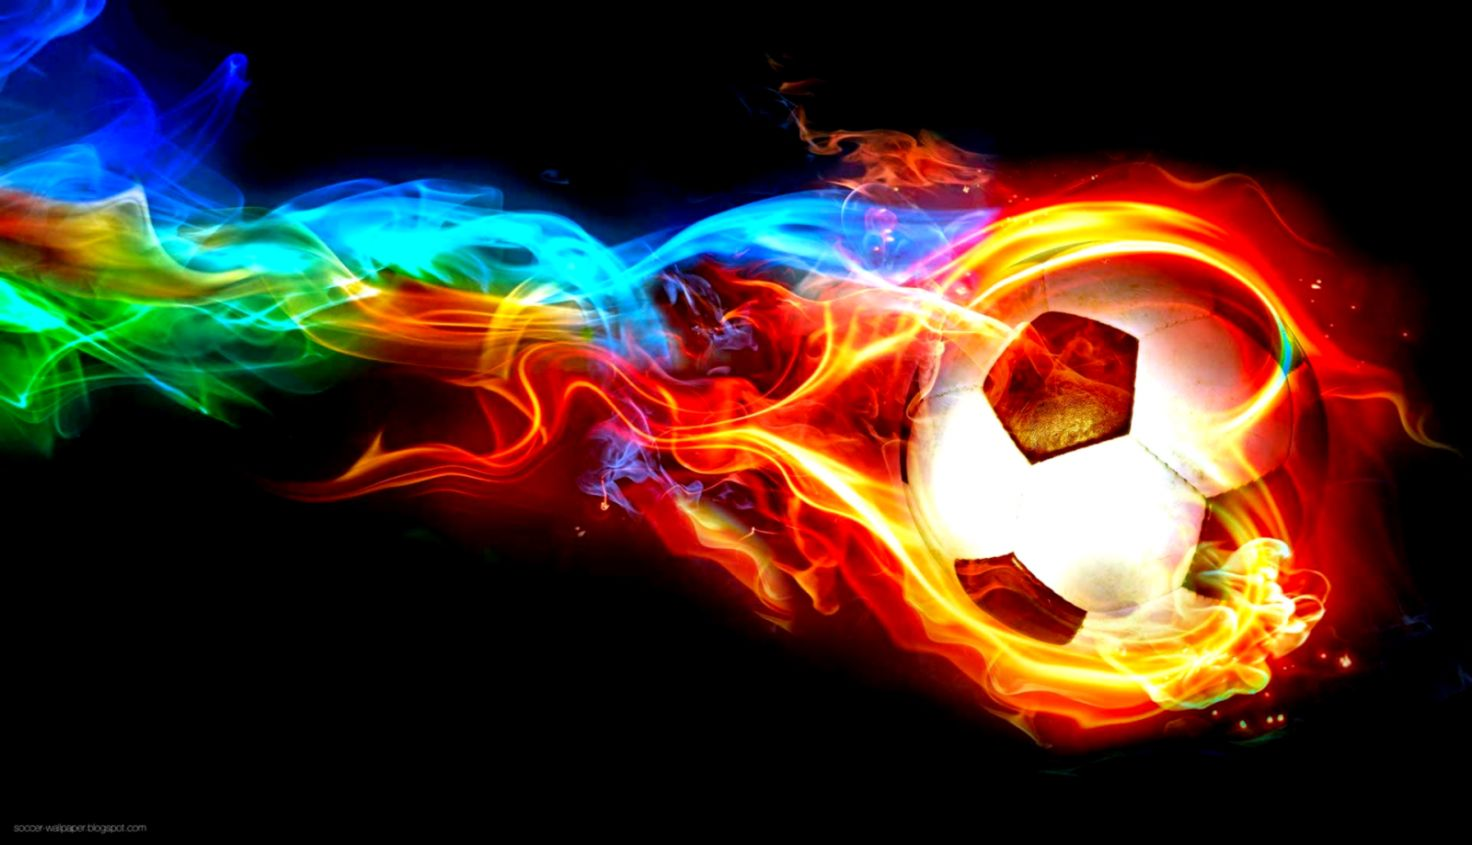 Burning Soccer Ball Wallpaper